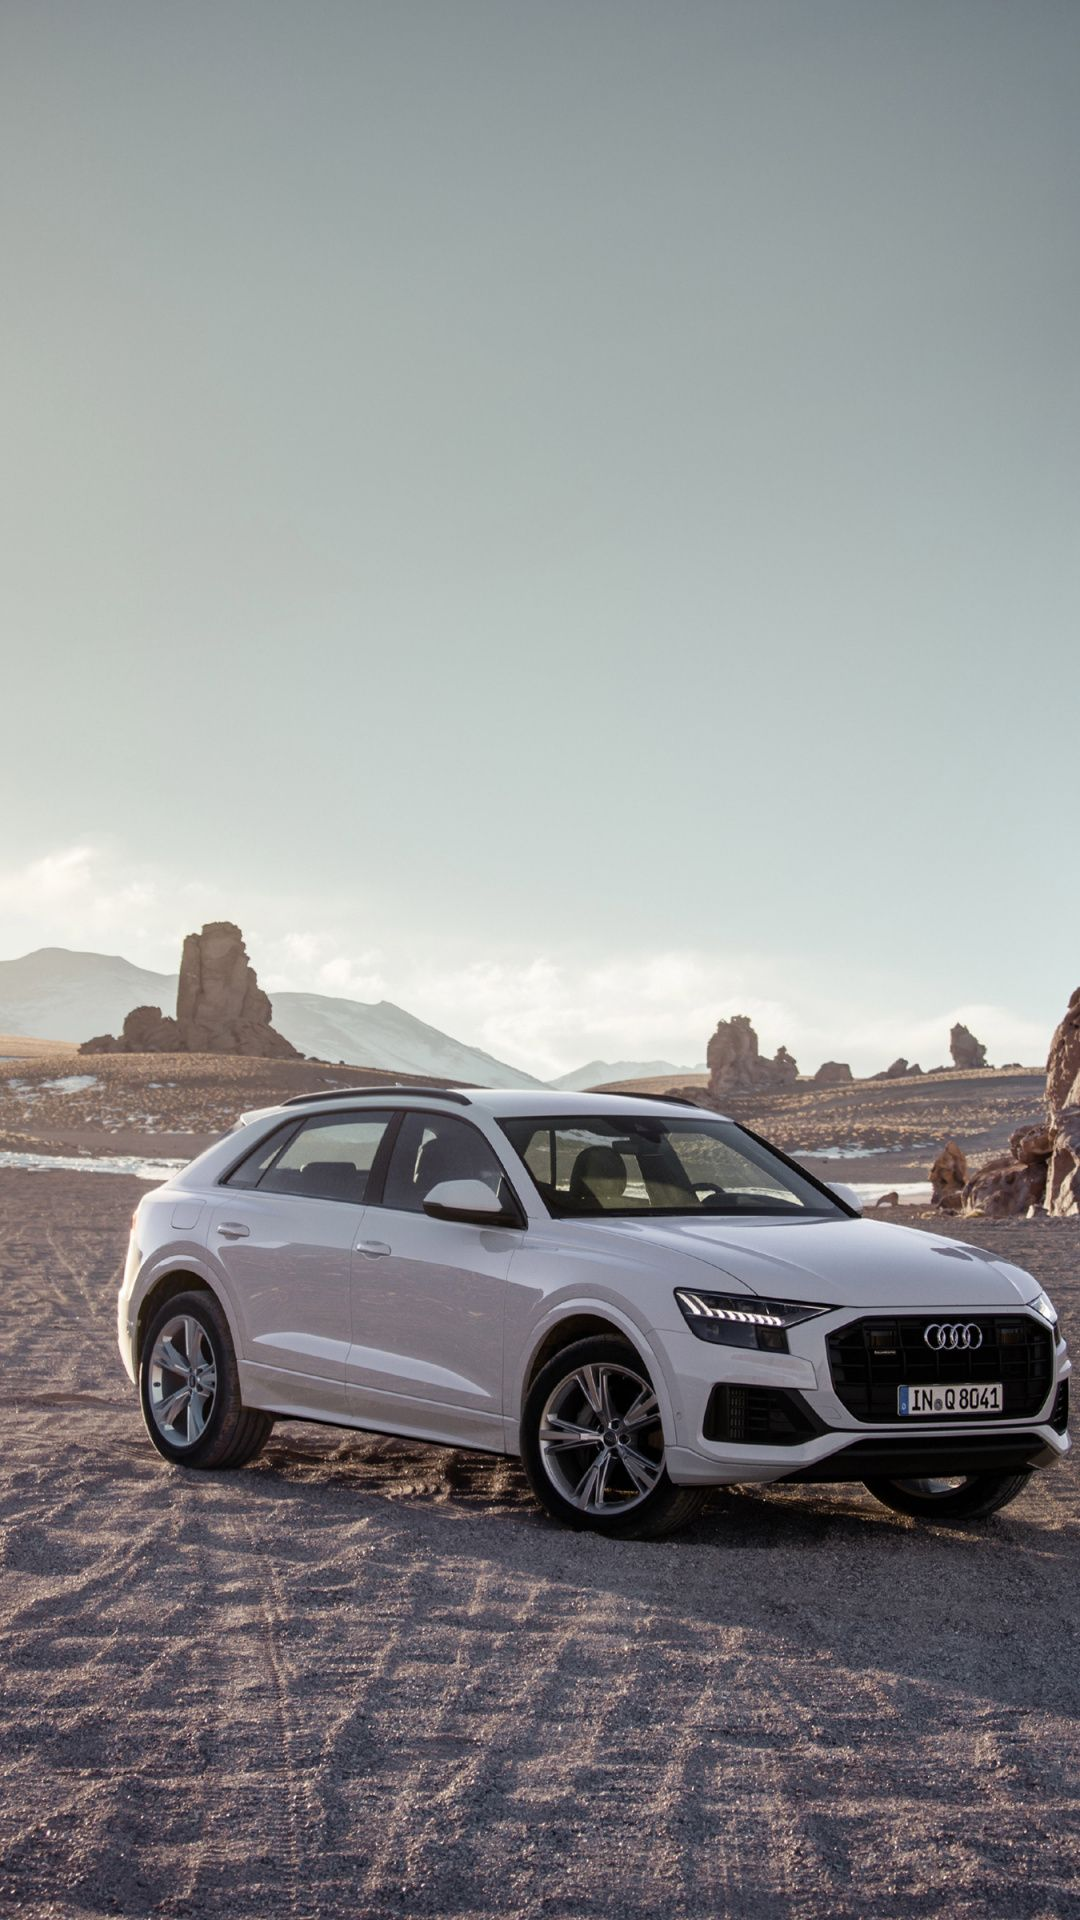 Off Road White Audi Q8 Compact Suv 1080x1920 Wallpaper With